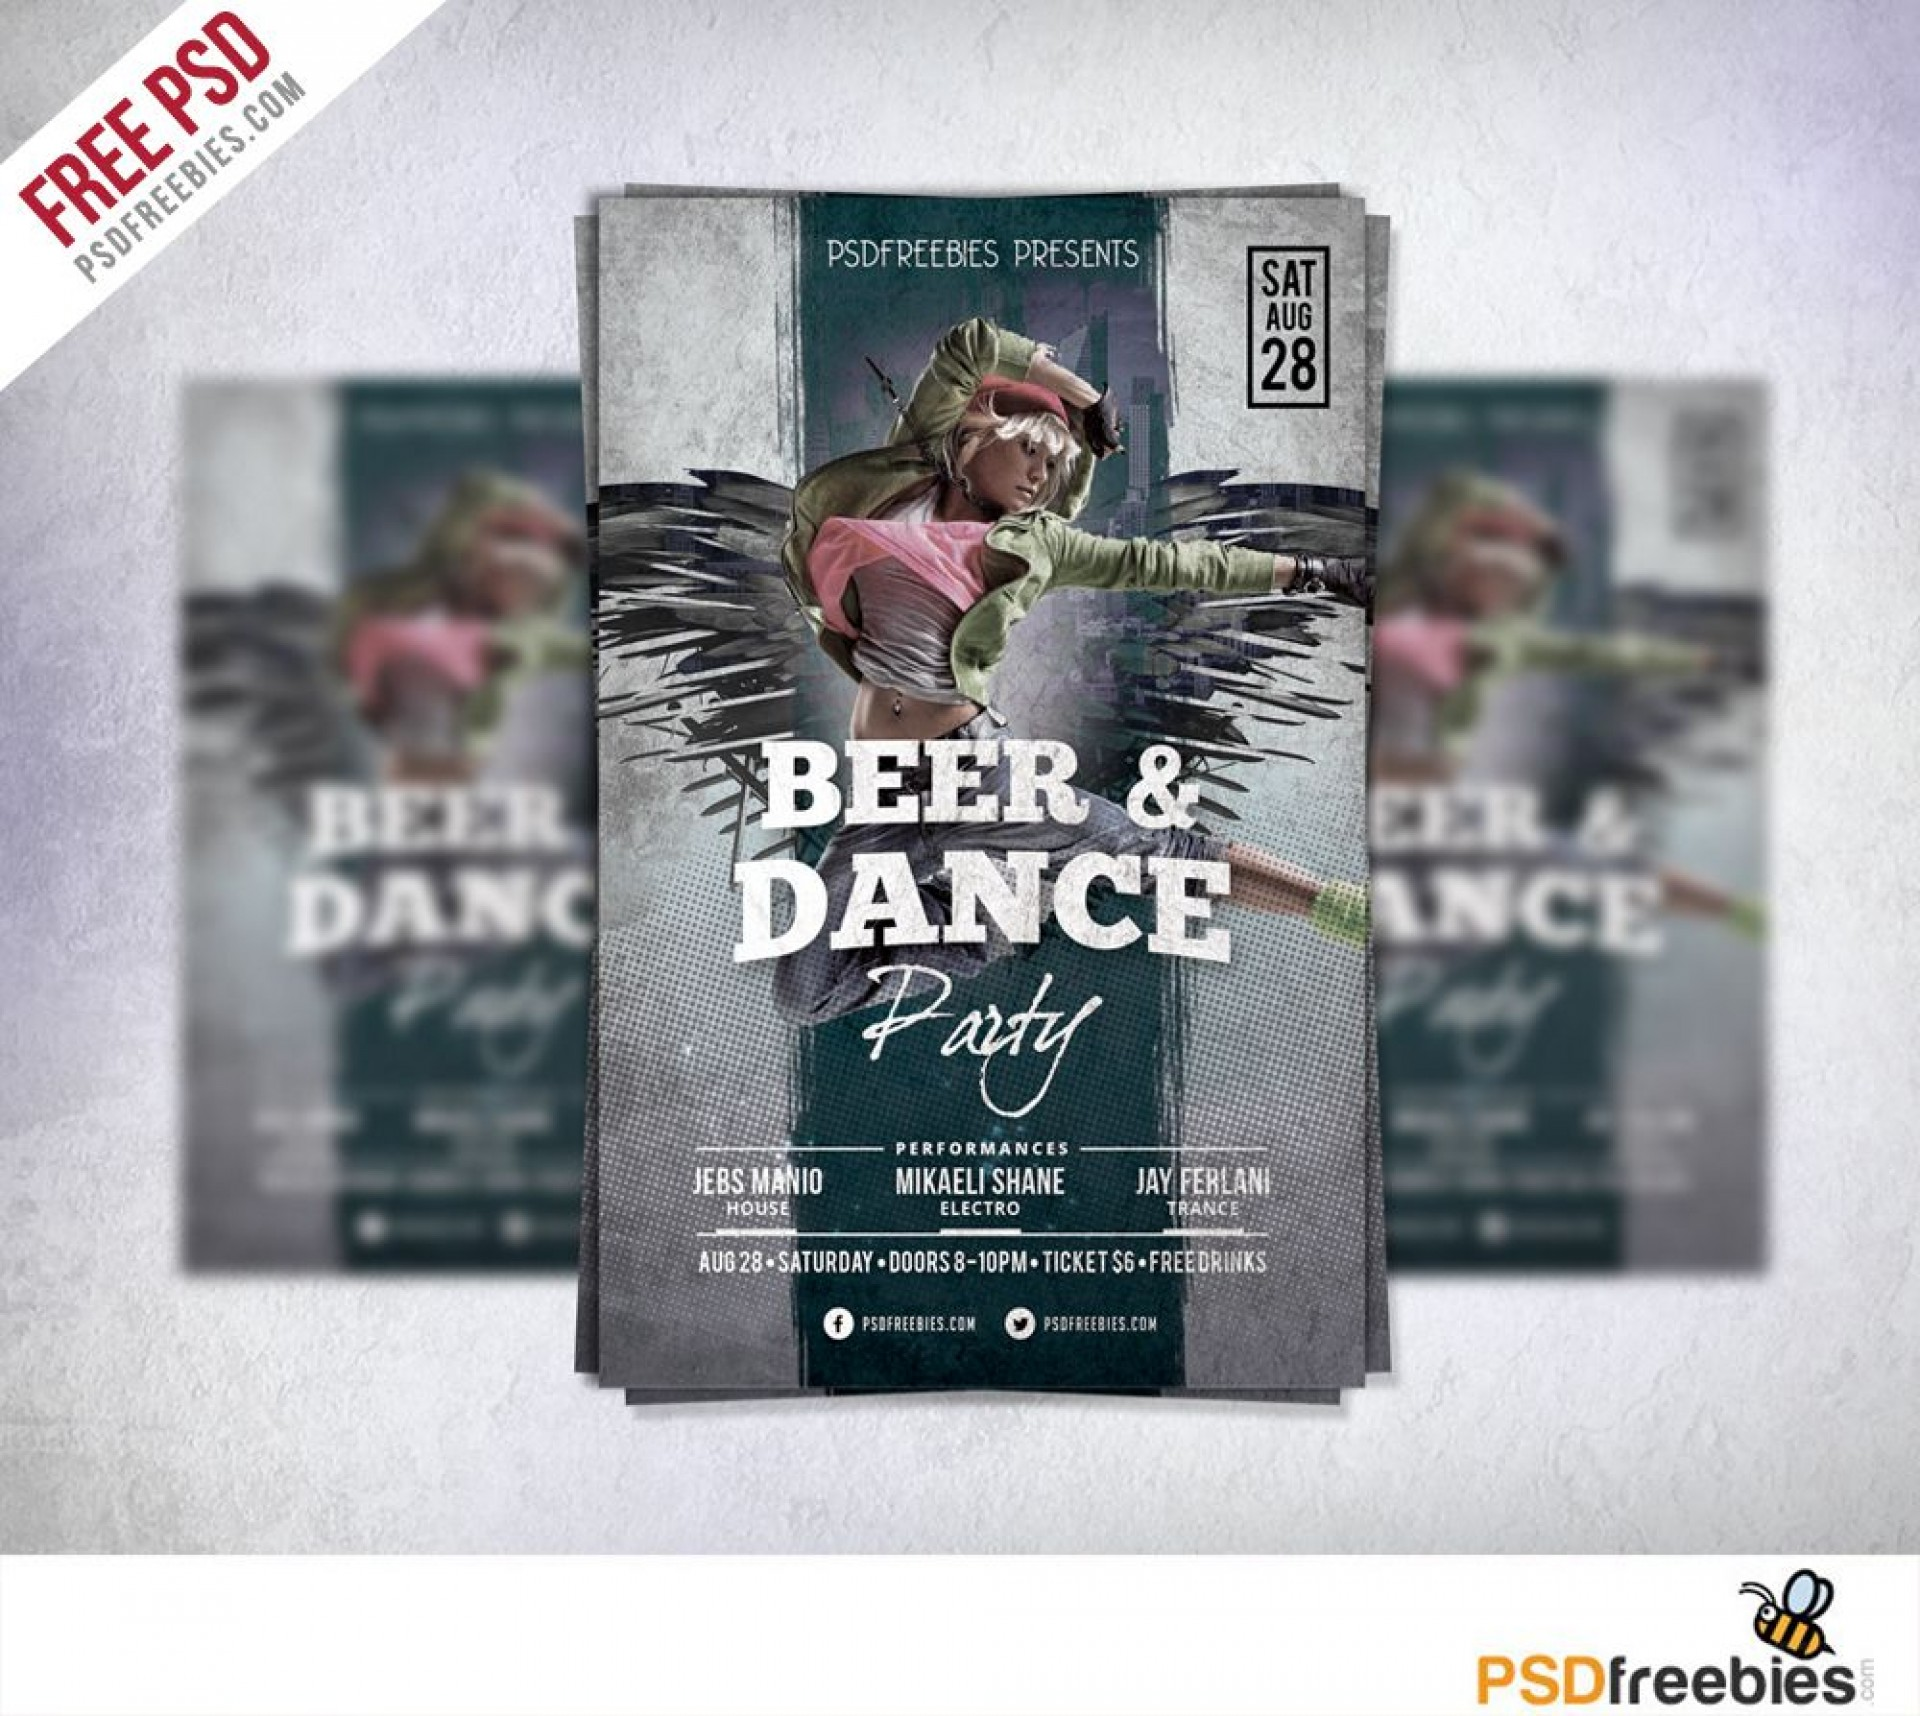 004 Rare Free Party Flyer Template For Photoshop Concept  Pool Psd Download1920